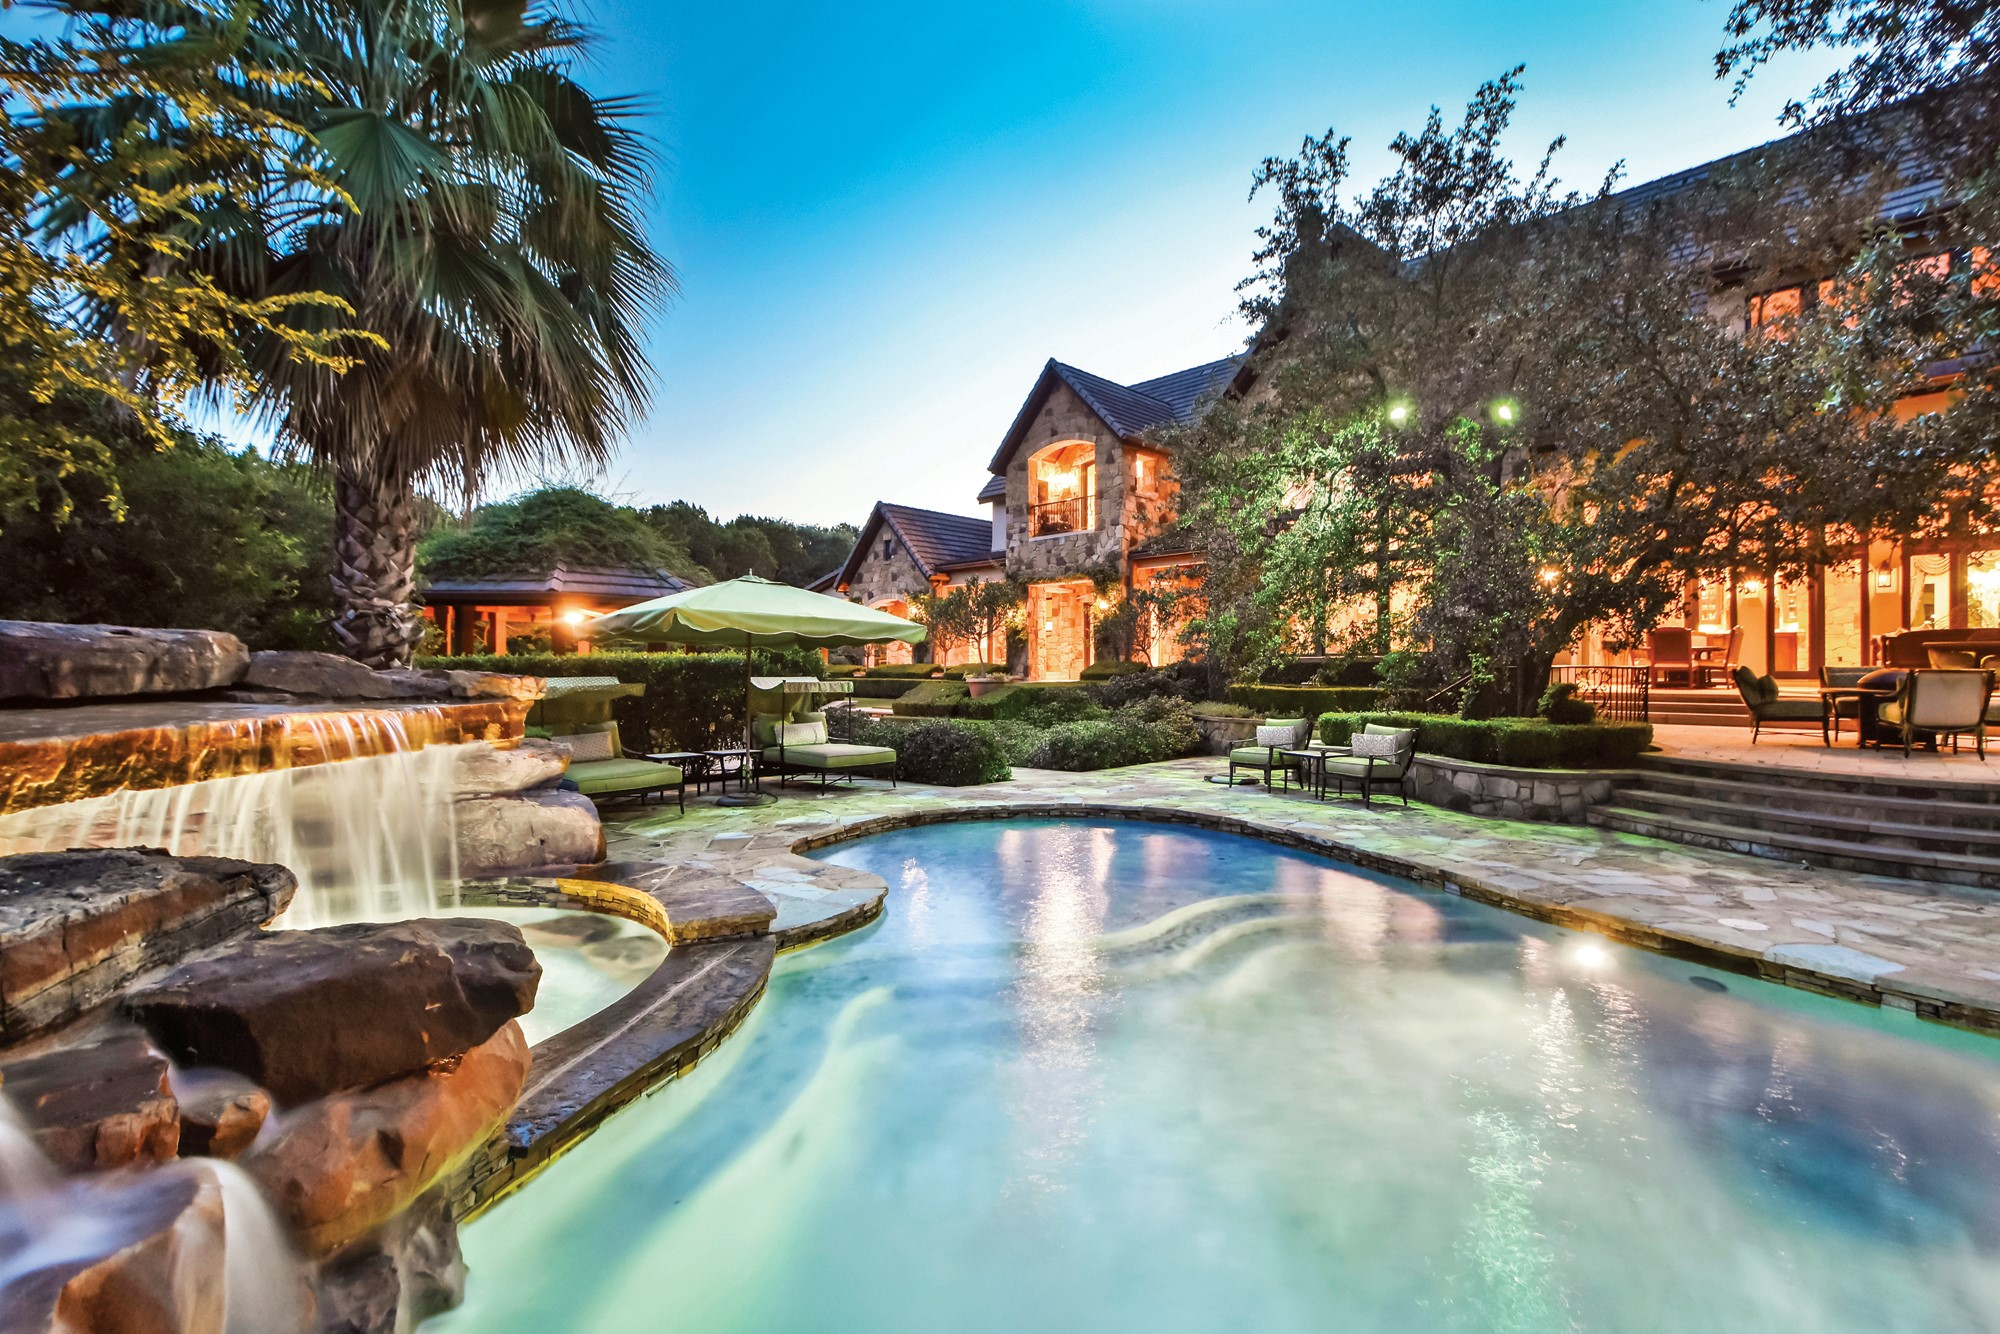 Discretely located adjacent to the 18th hole of the Austin Country Club in the hills of Capital of Texas Highway